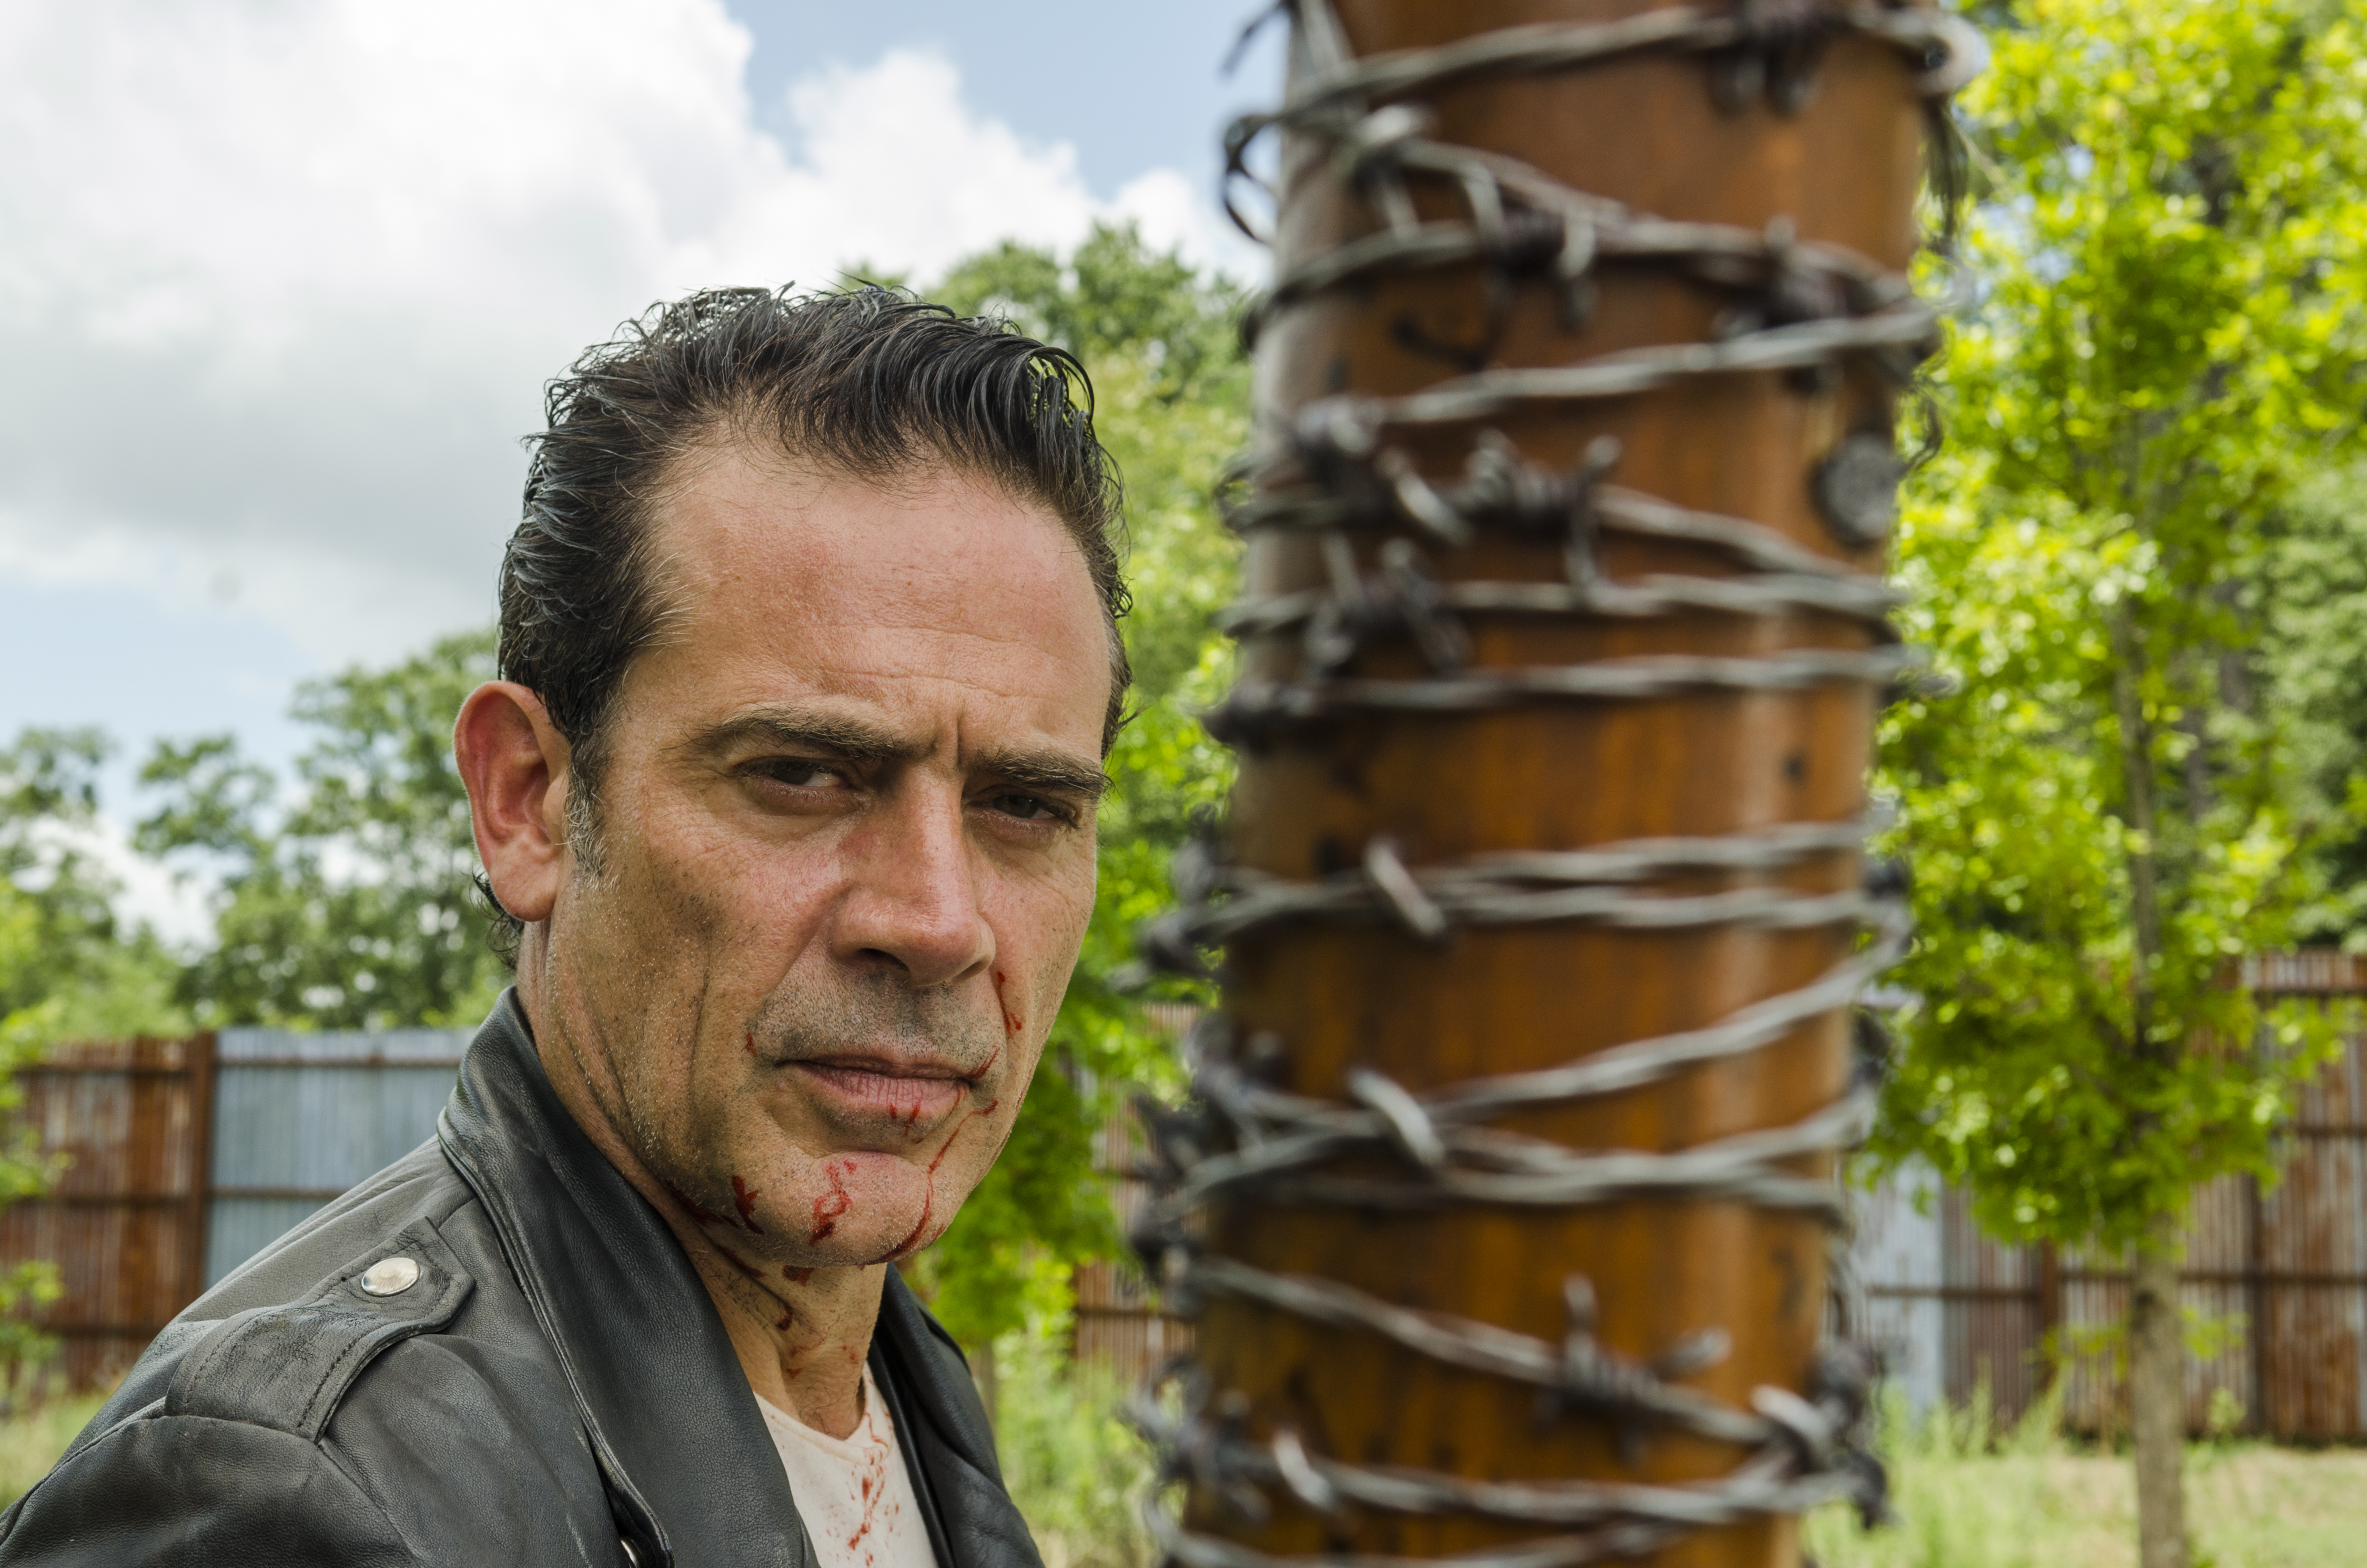 twd 708 gp 0728 0116 rt The Walking Dead and Why Its Time to Bury the Zombies